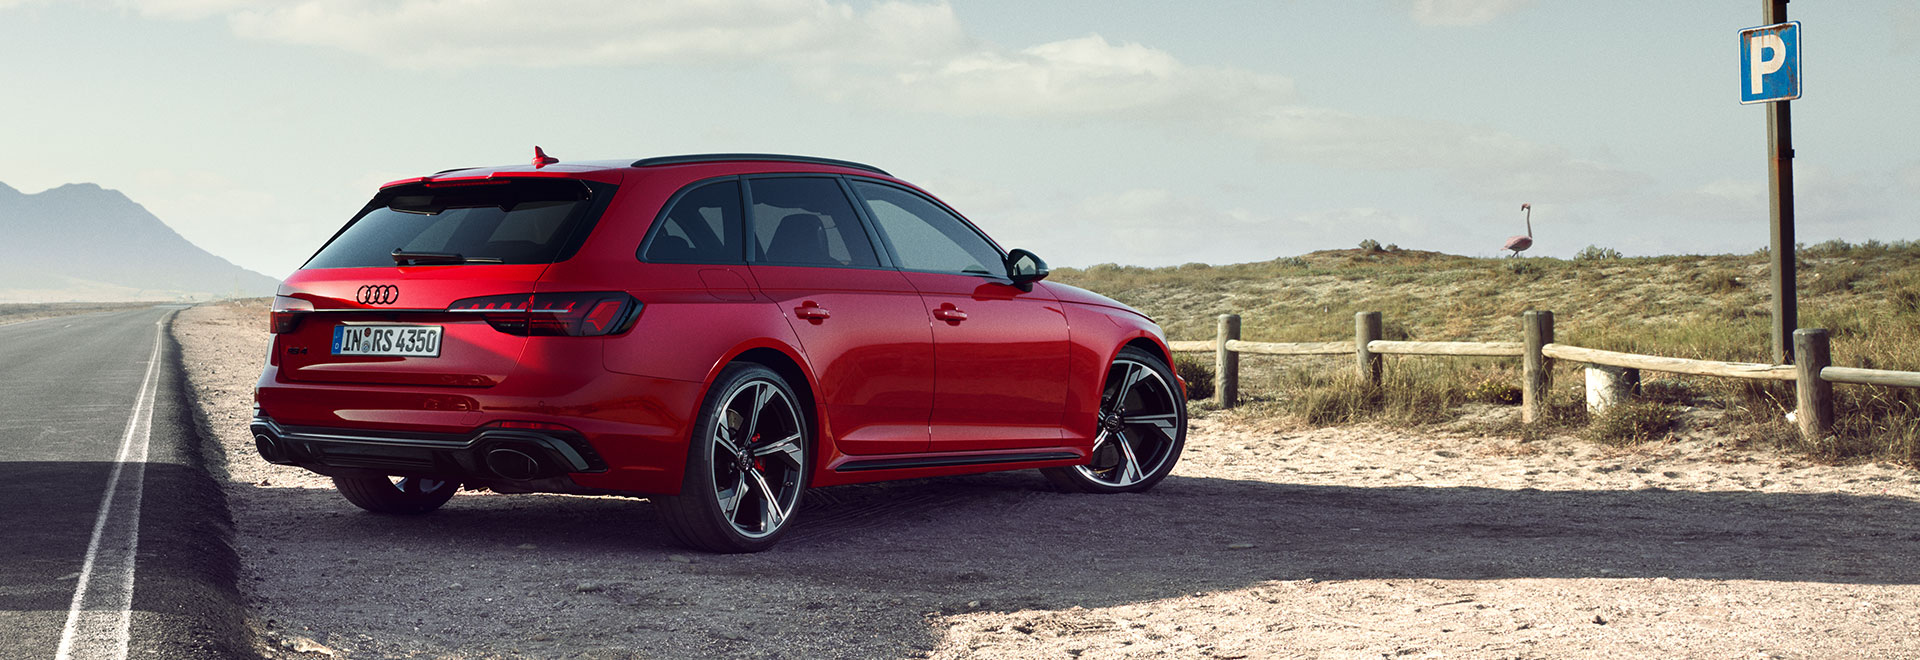 The RS 4 in your country